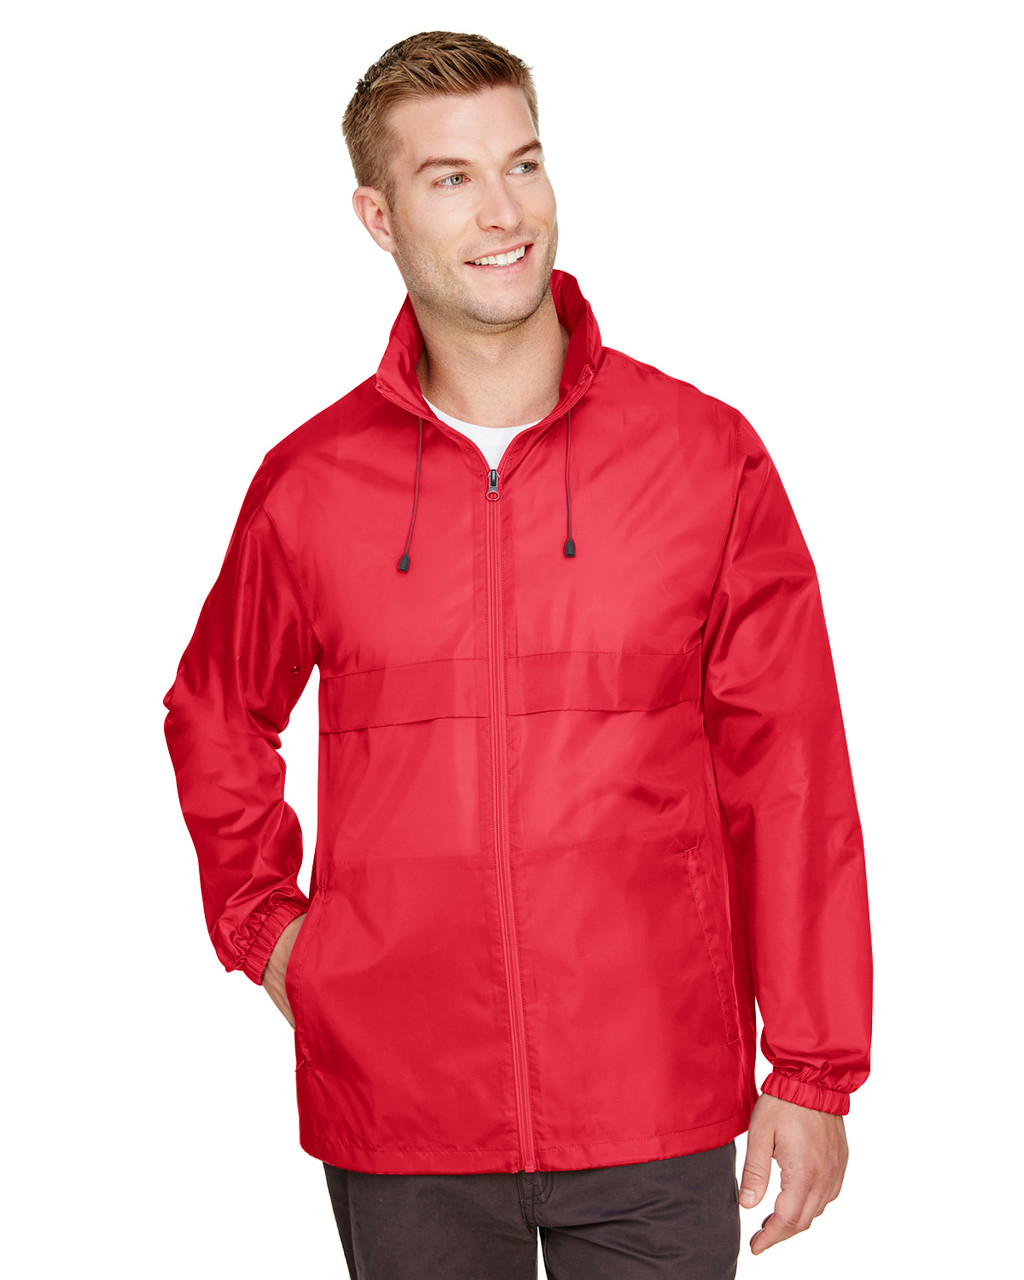 Sport Red - TT73 Team 365 Adult Zone Protect Lightweight Jacket   BlankClothing.ca